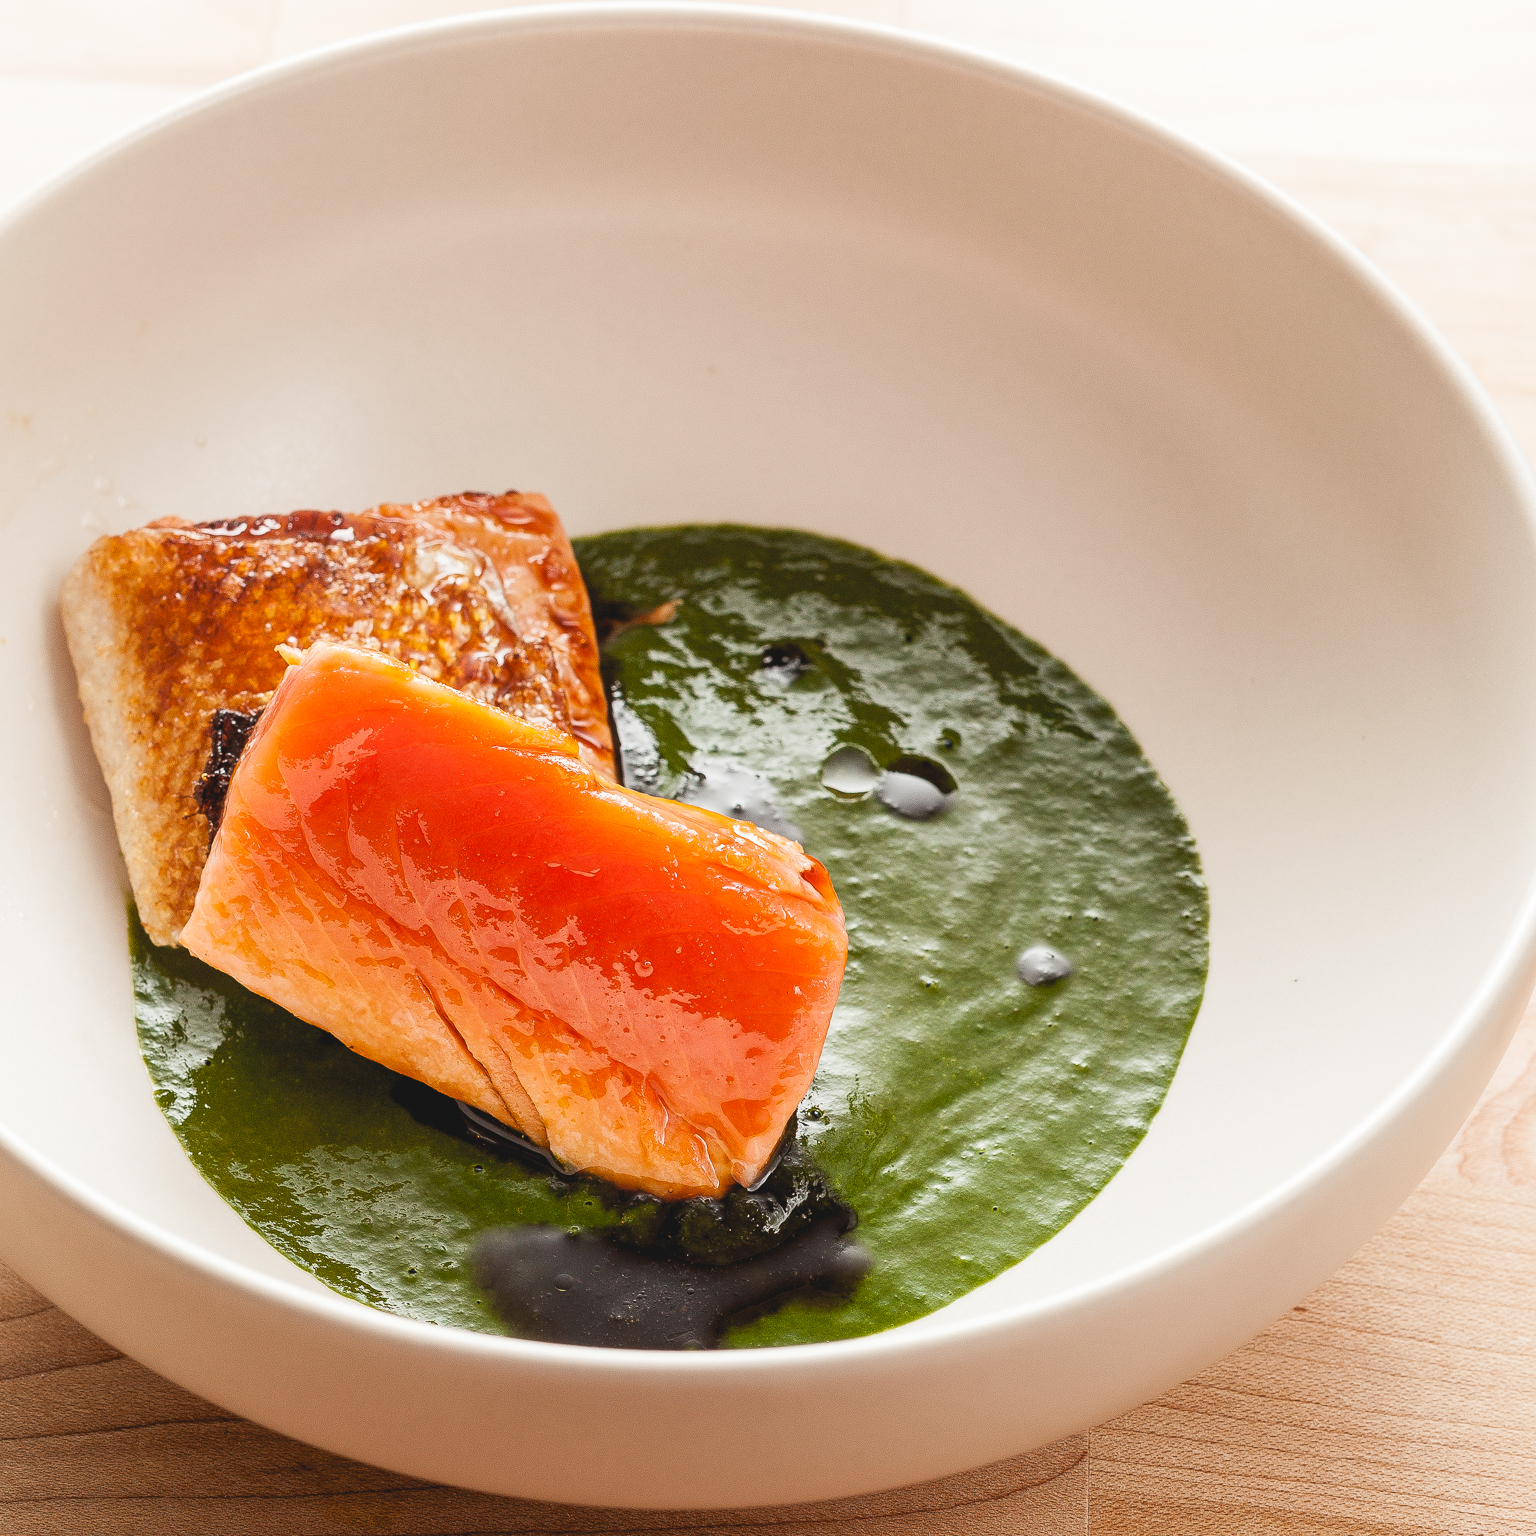 crispy skin salmon lox and spinach